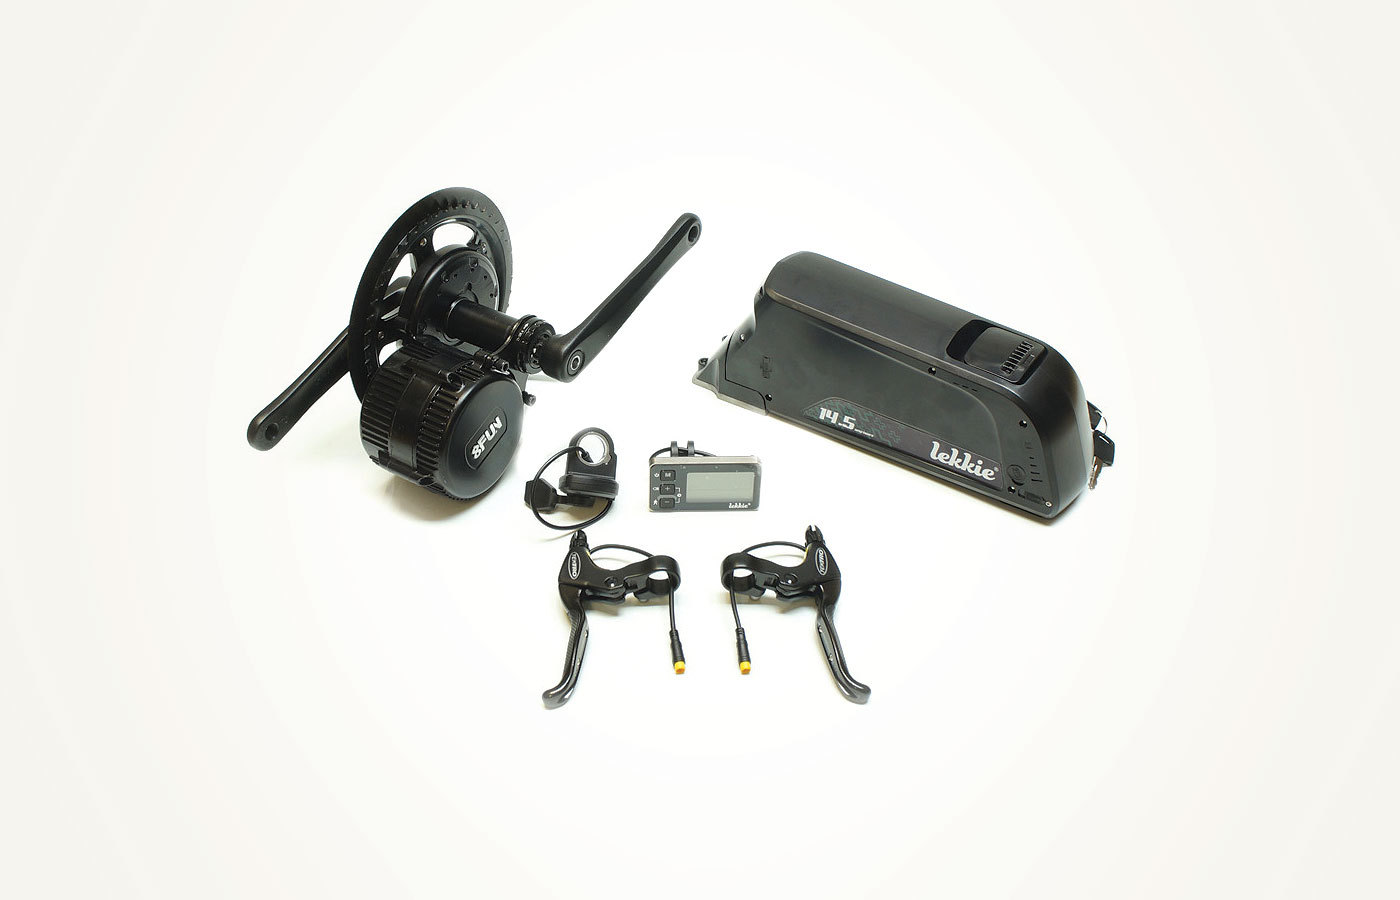 Lekkie Summit Electric Bike Kit